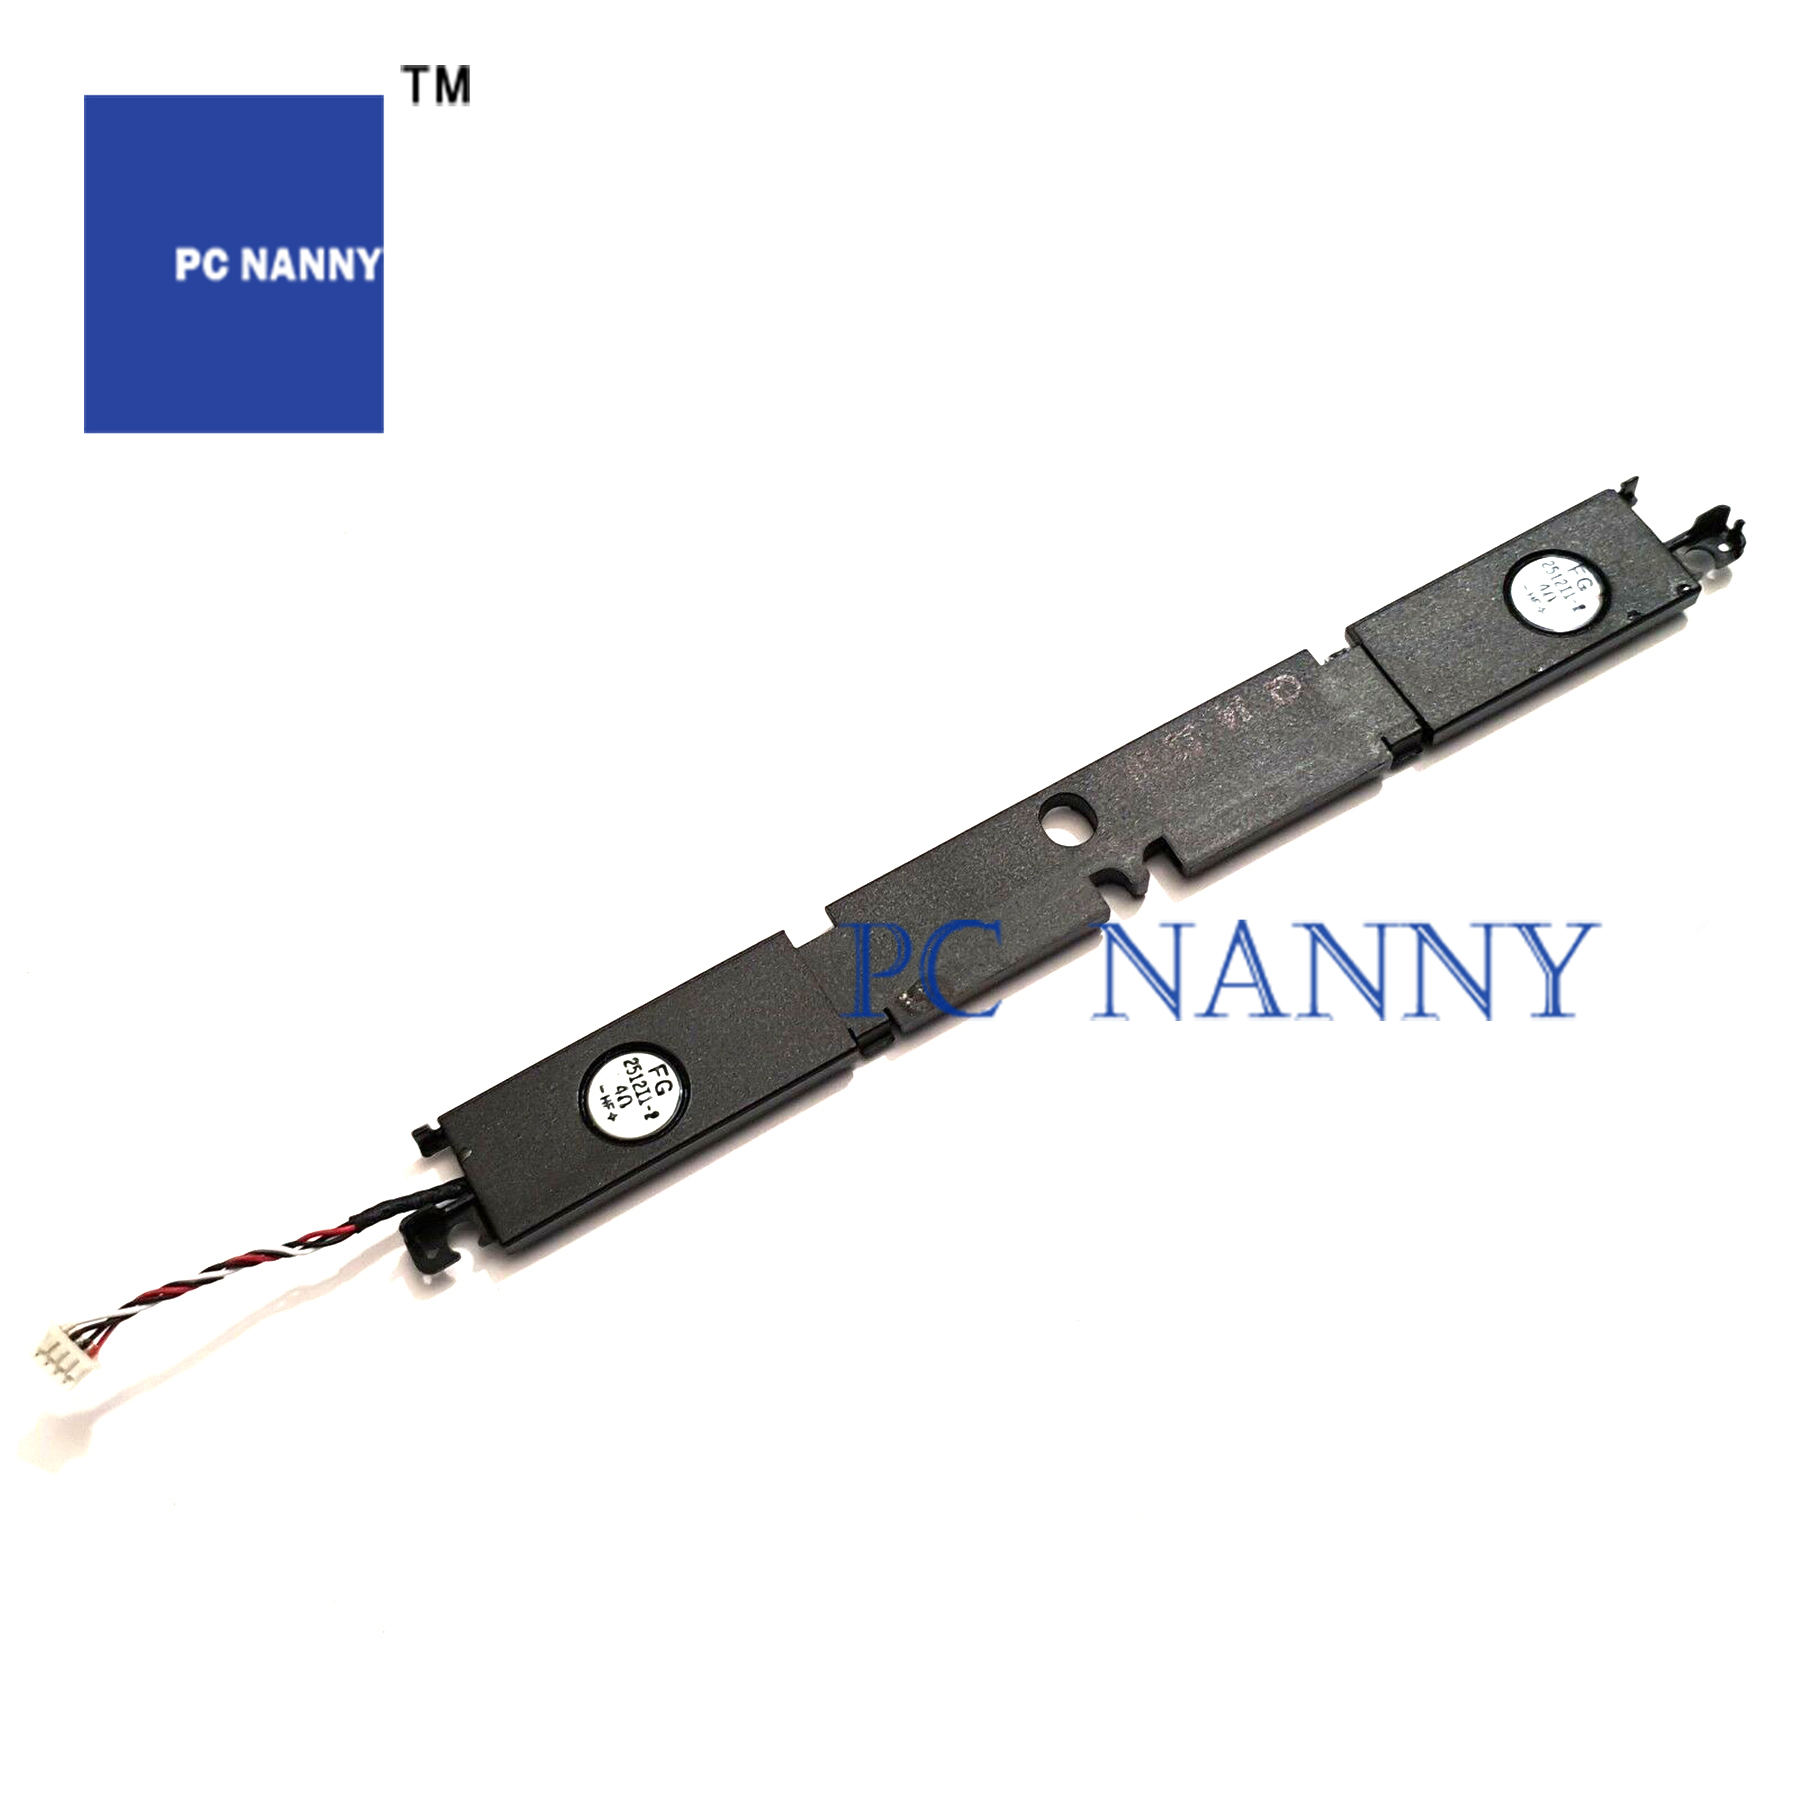 PCNANNY FORHP Elitebook 820 G1 G2 730555-001 Speaker Test Good